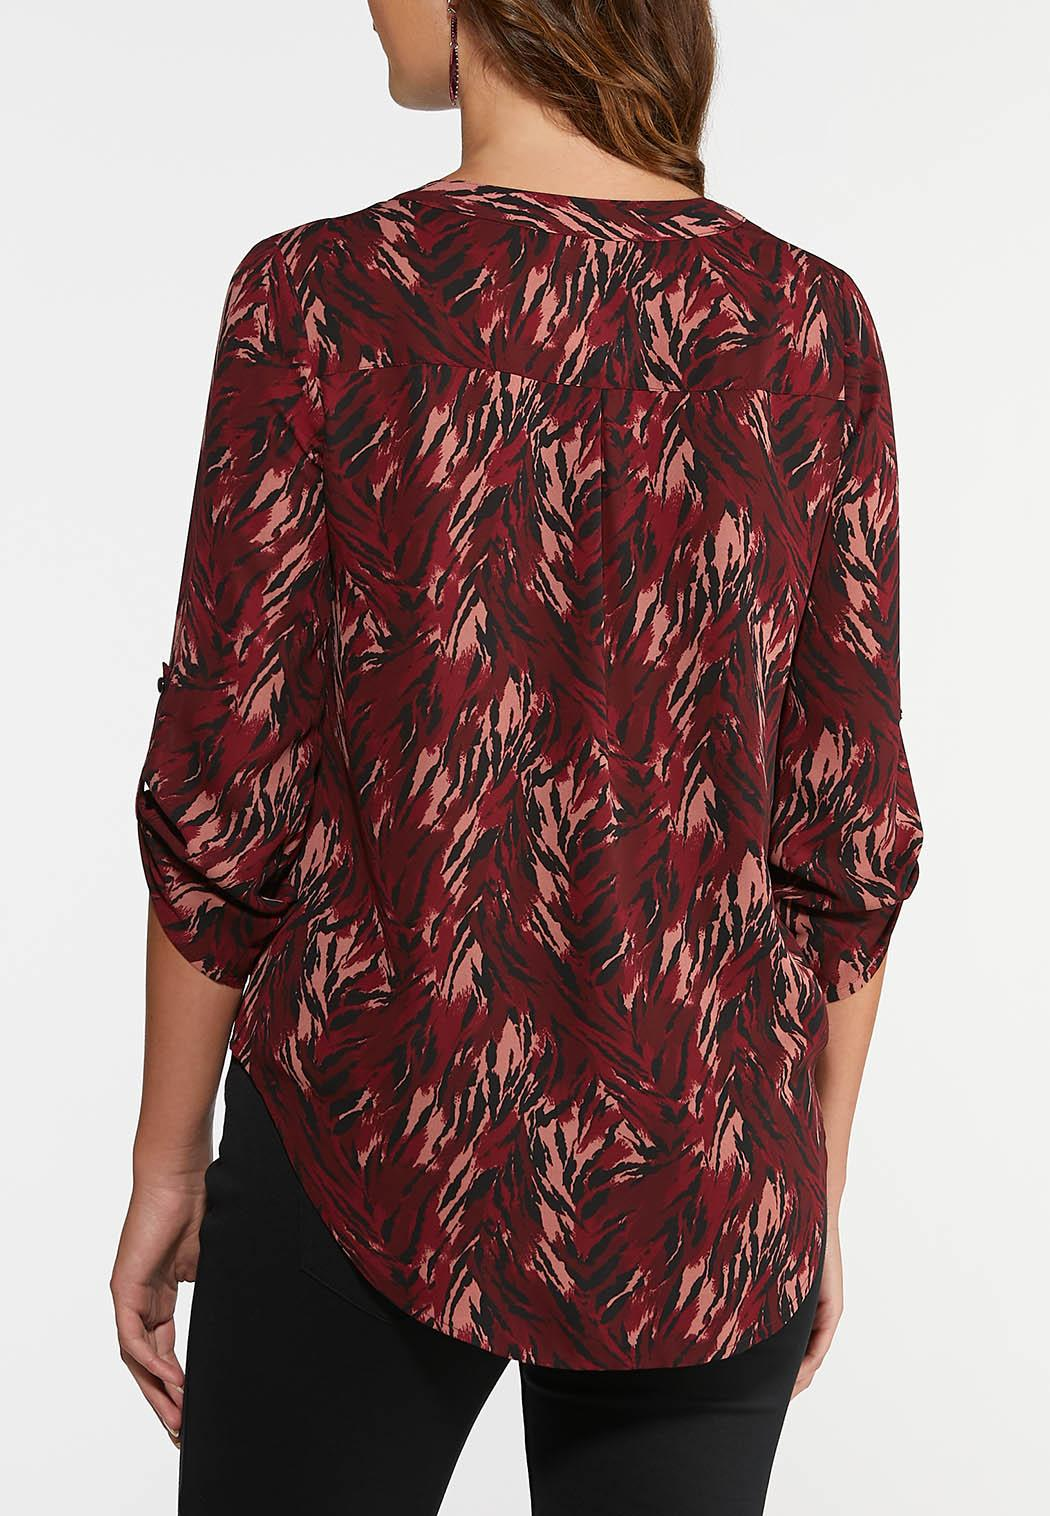 Plus Size Cranberry Zebra Print Top (Item #43980721)